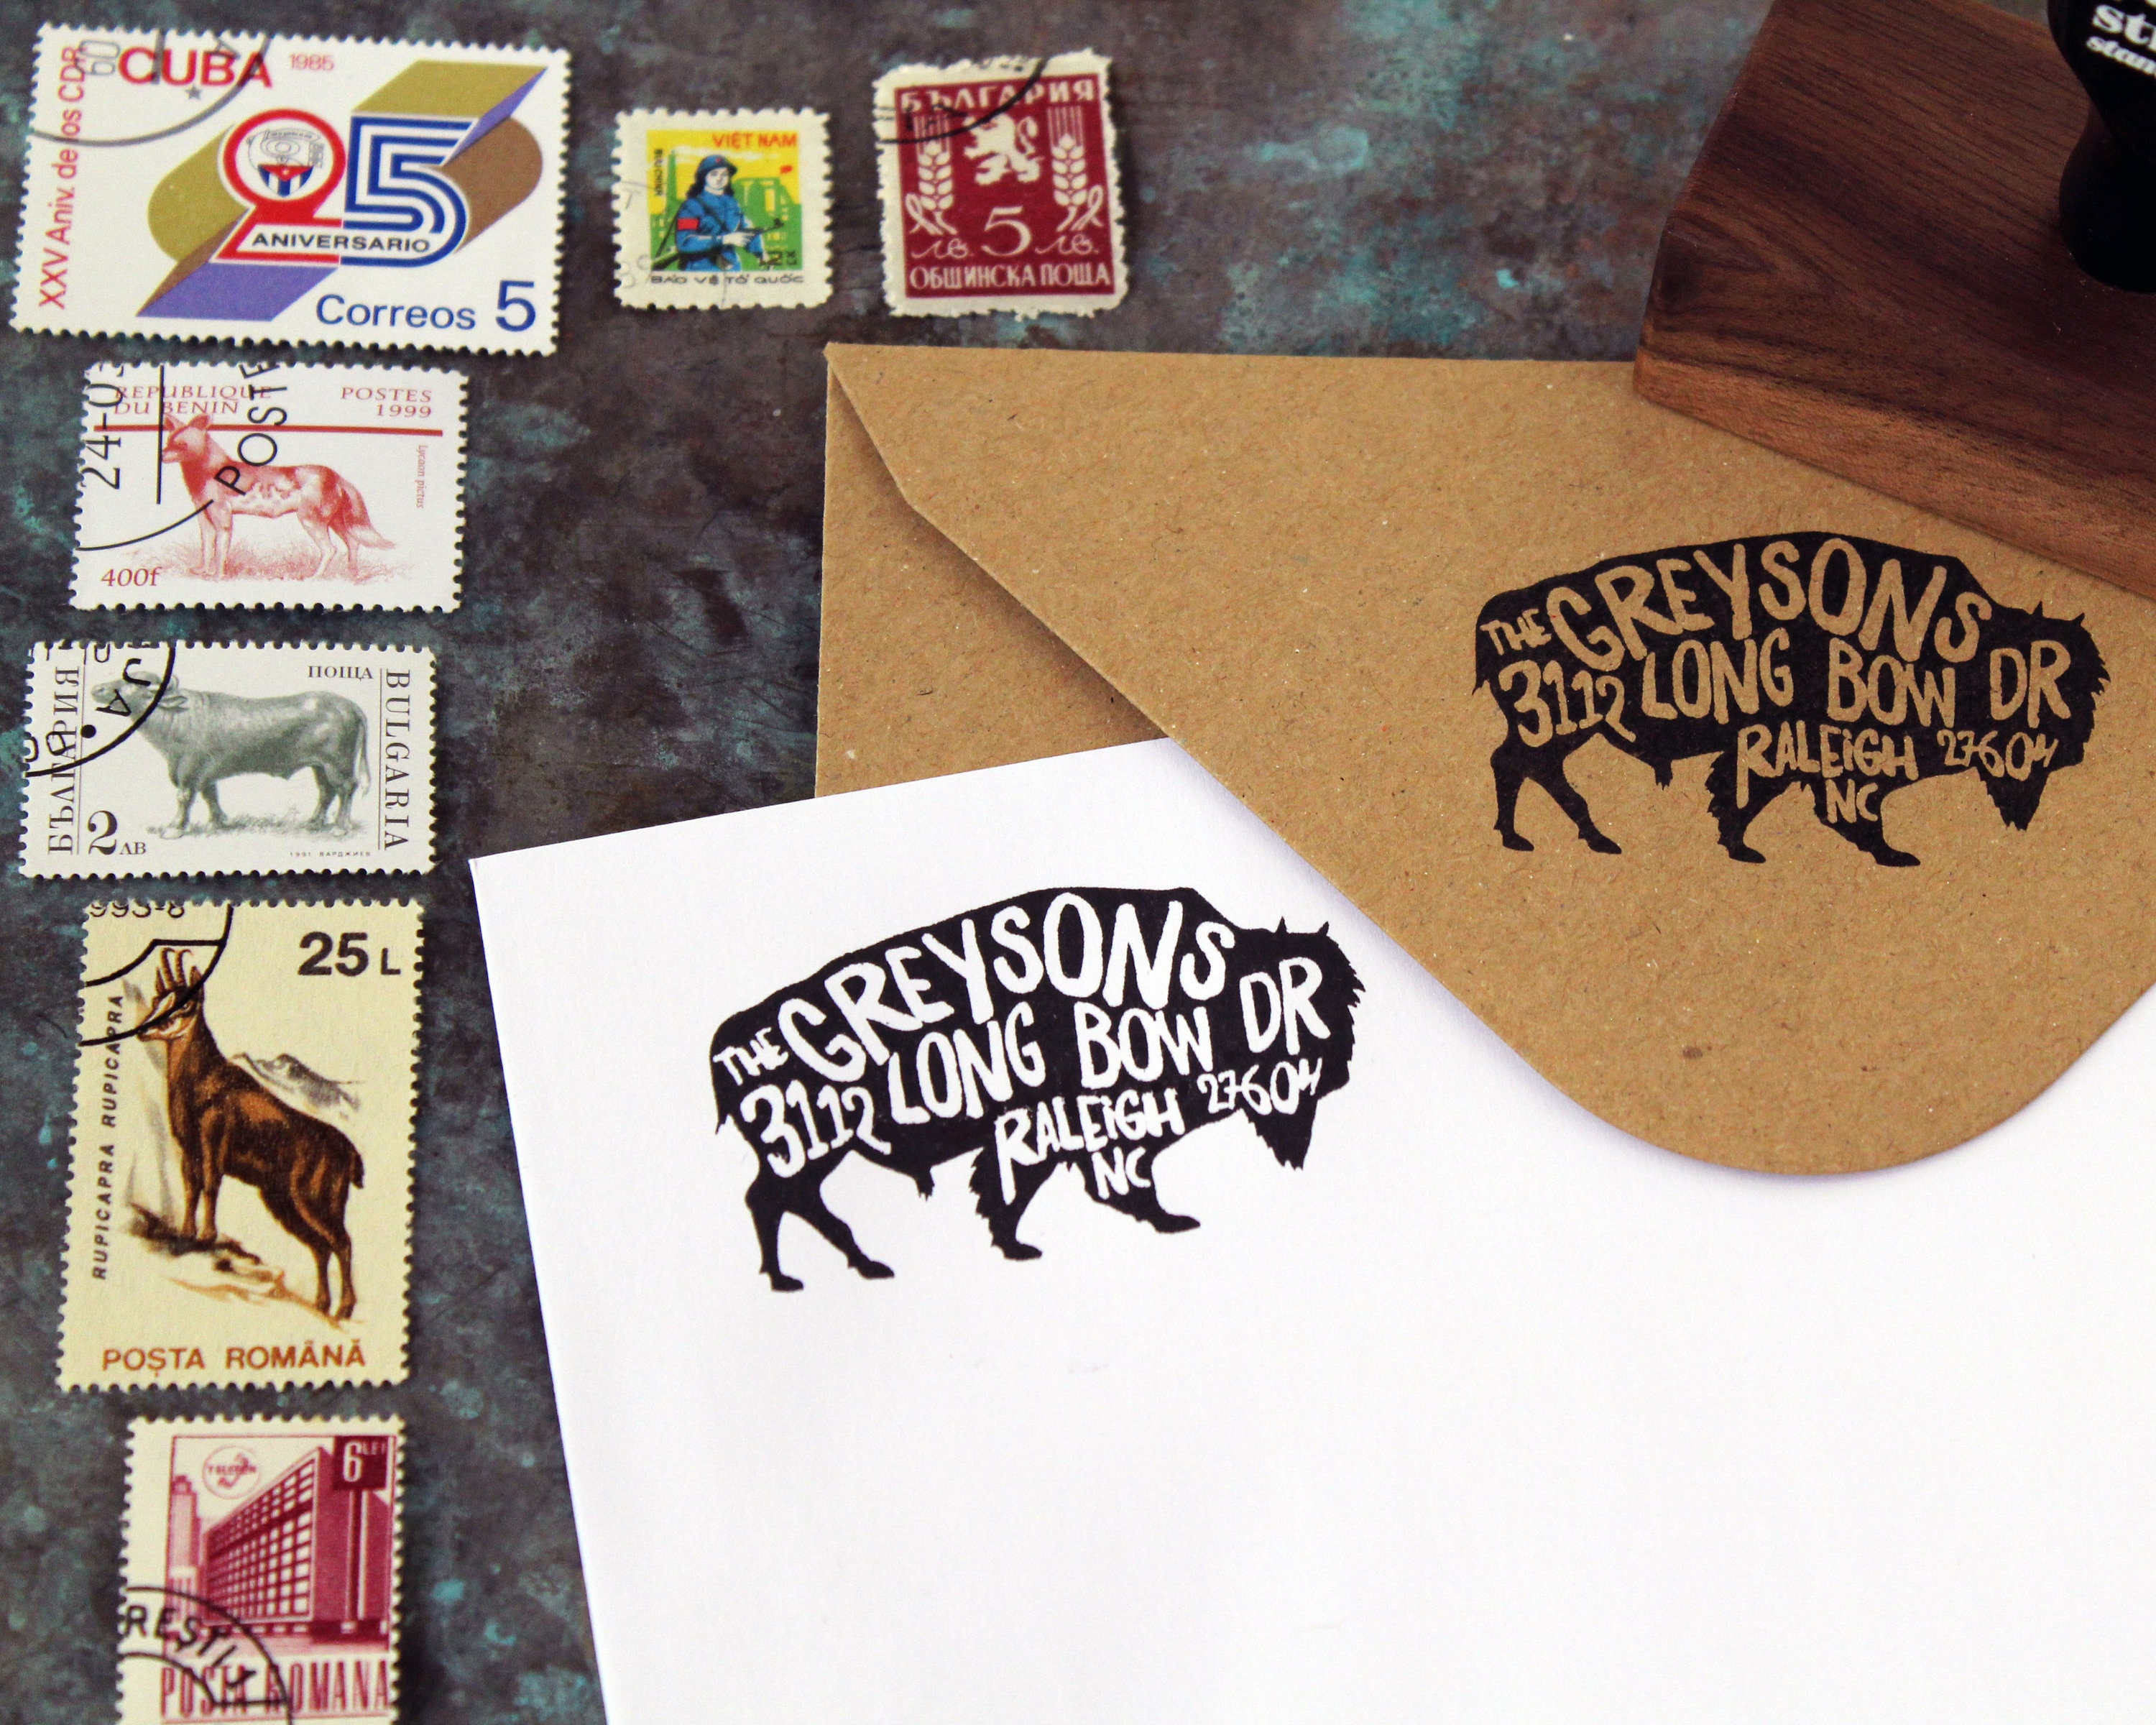 housewarming parties and weddings stamp perfect gift for holidays Custom Georgia State Return Address Stamp